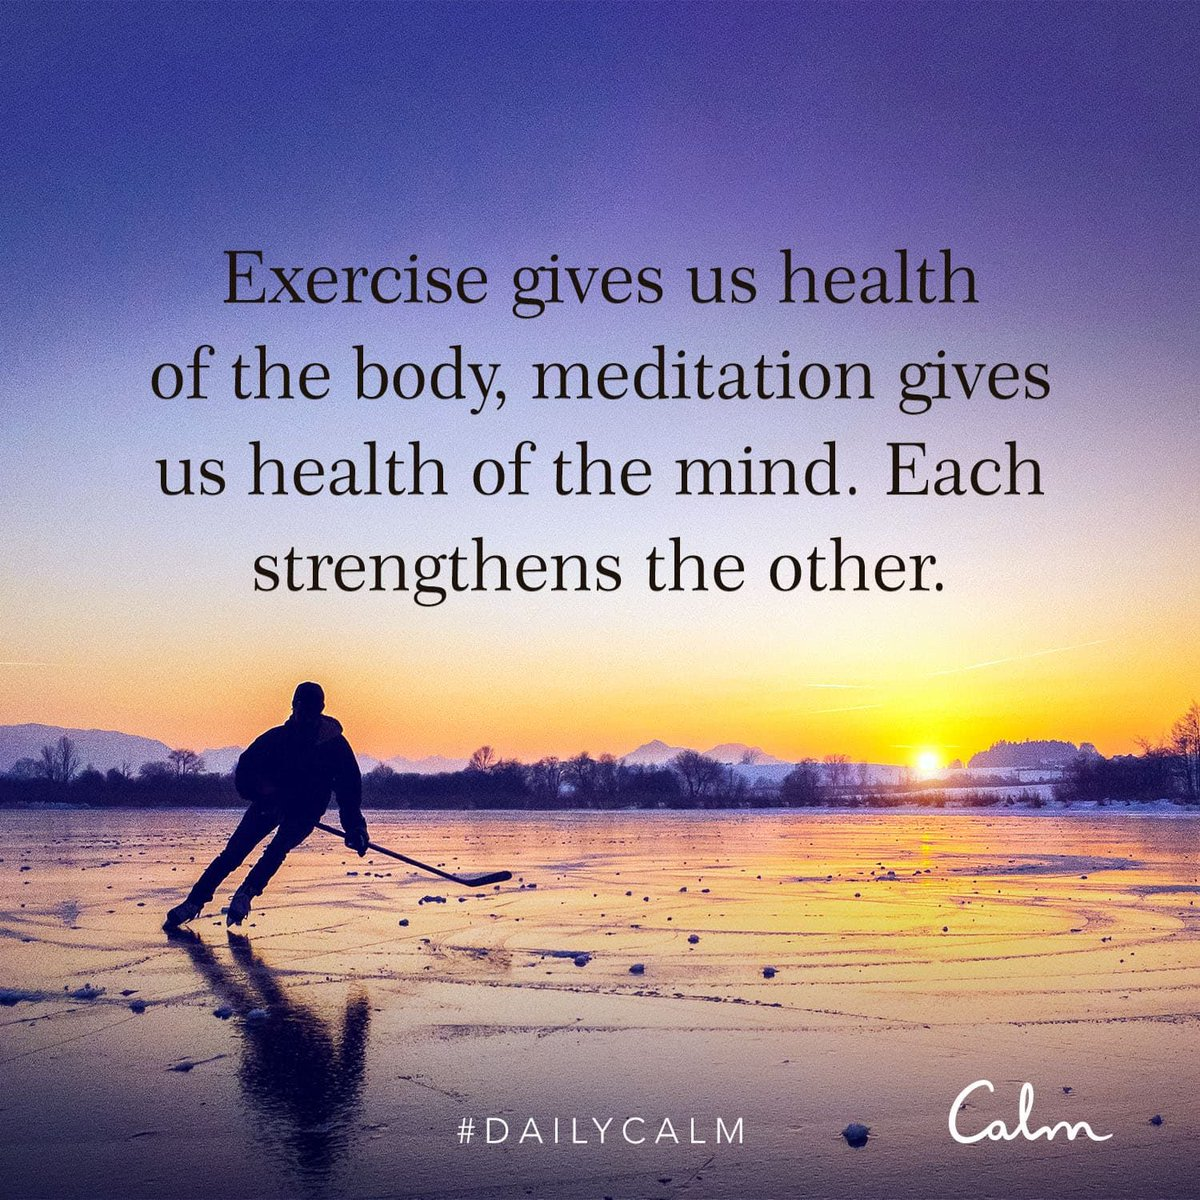 What inspires you to get moving? #DailyCalm